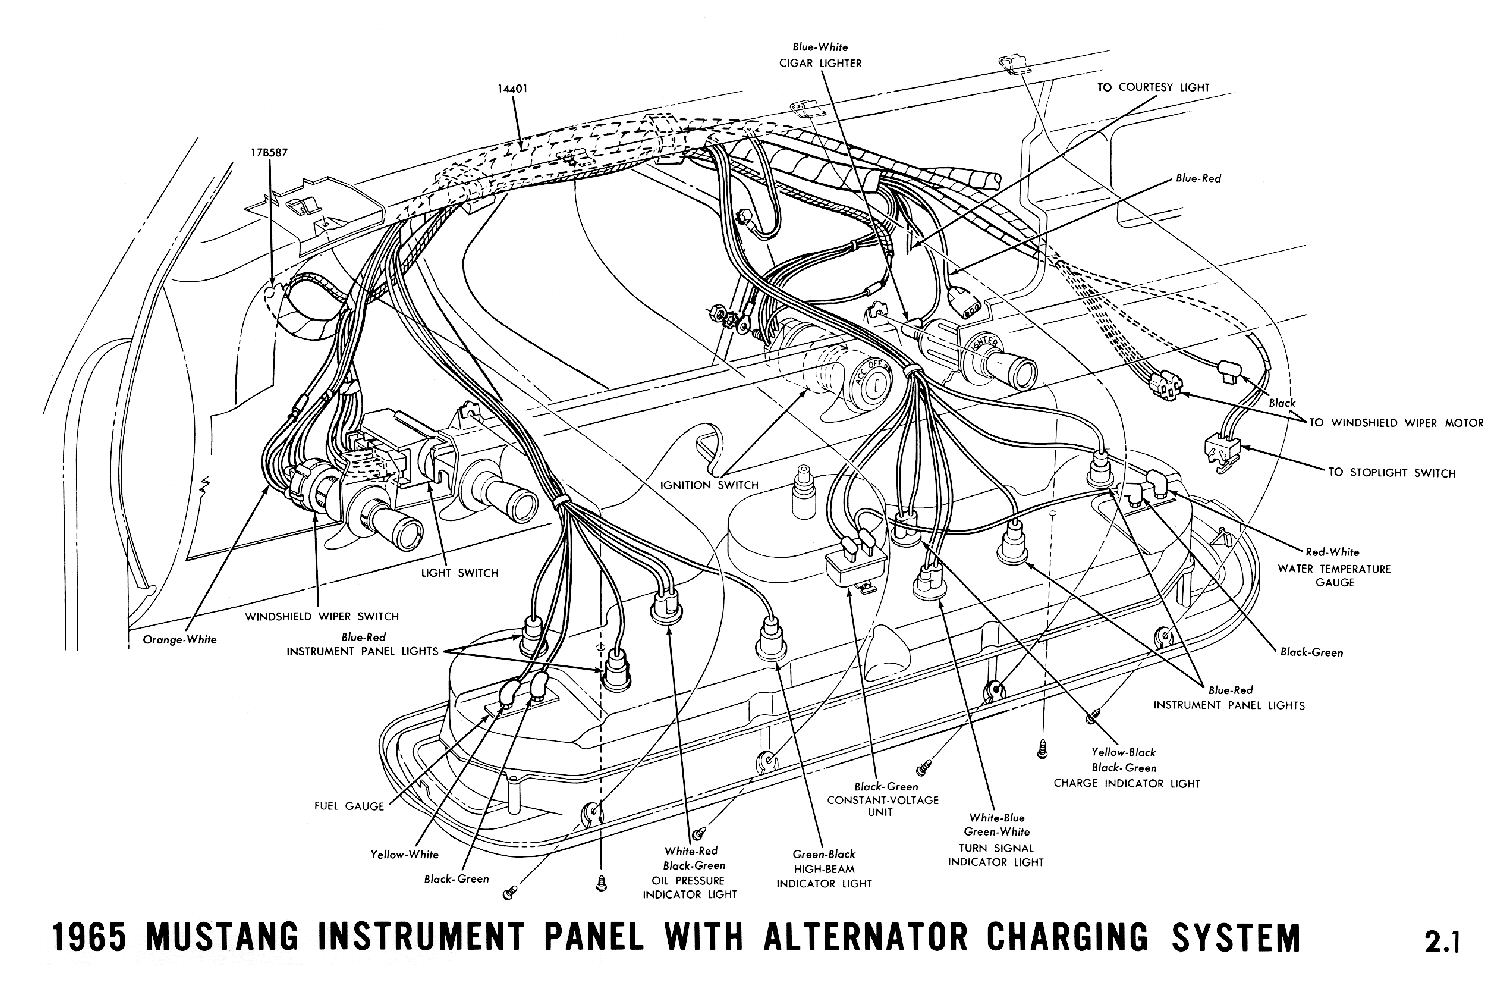 Ford Thunderbird Shop Manuals in addition DO0r 15531 together with Wiring Diagram 70ext Lights02 In 1970 Ford F100 likewise 65 73 Mustang Wiper Parts 247 likewise 1951 Ford Turn Signal Wiring Diagram. on 1963 falcon wiring